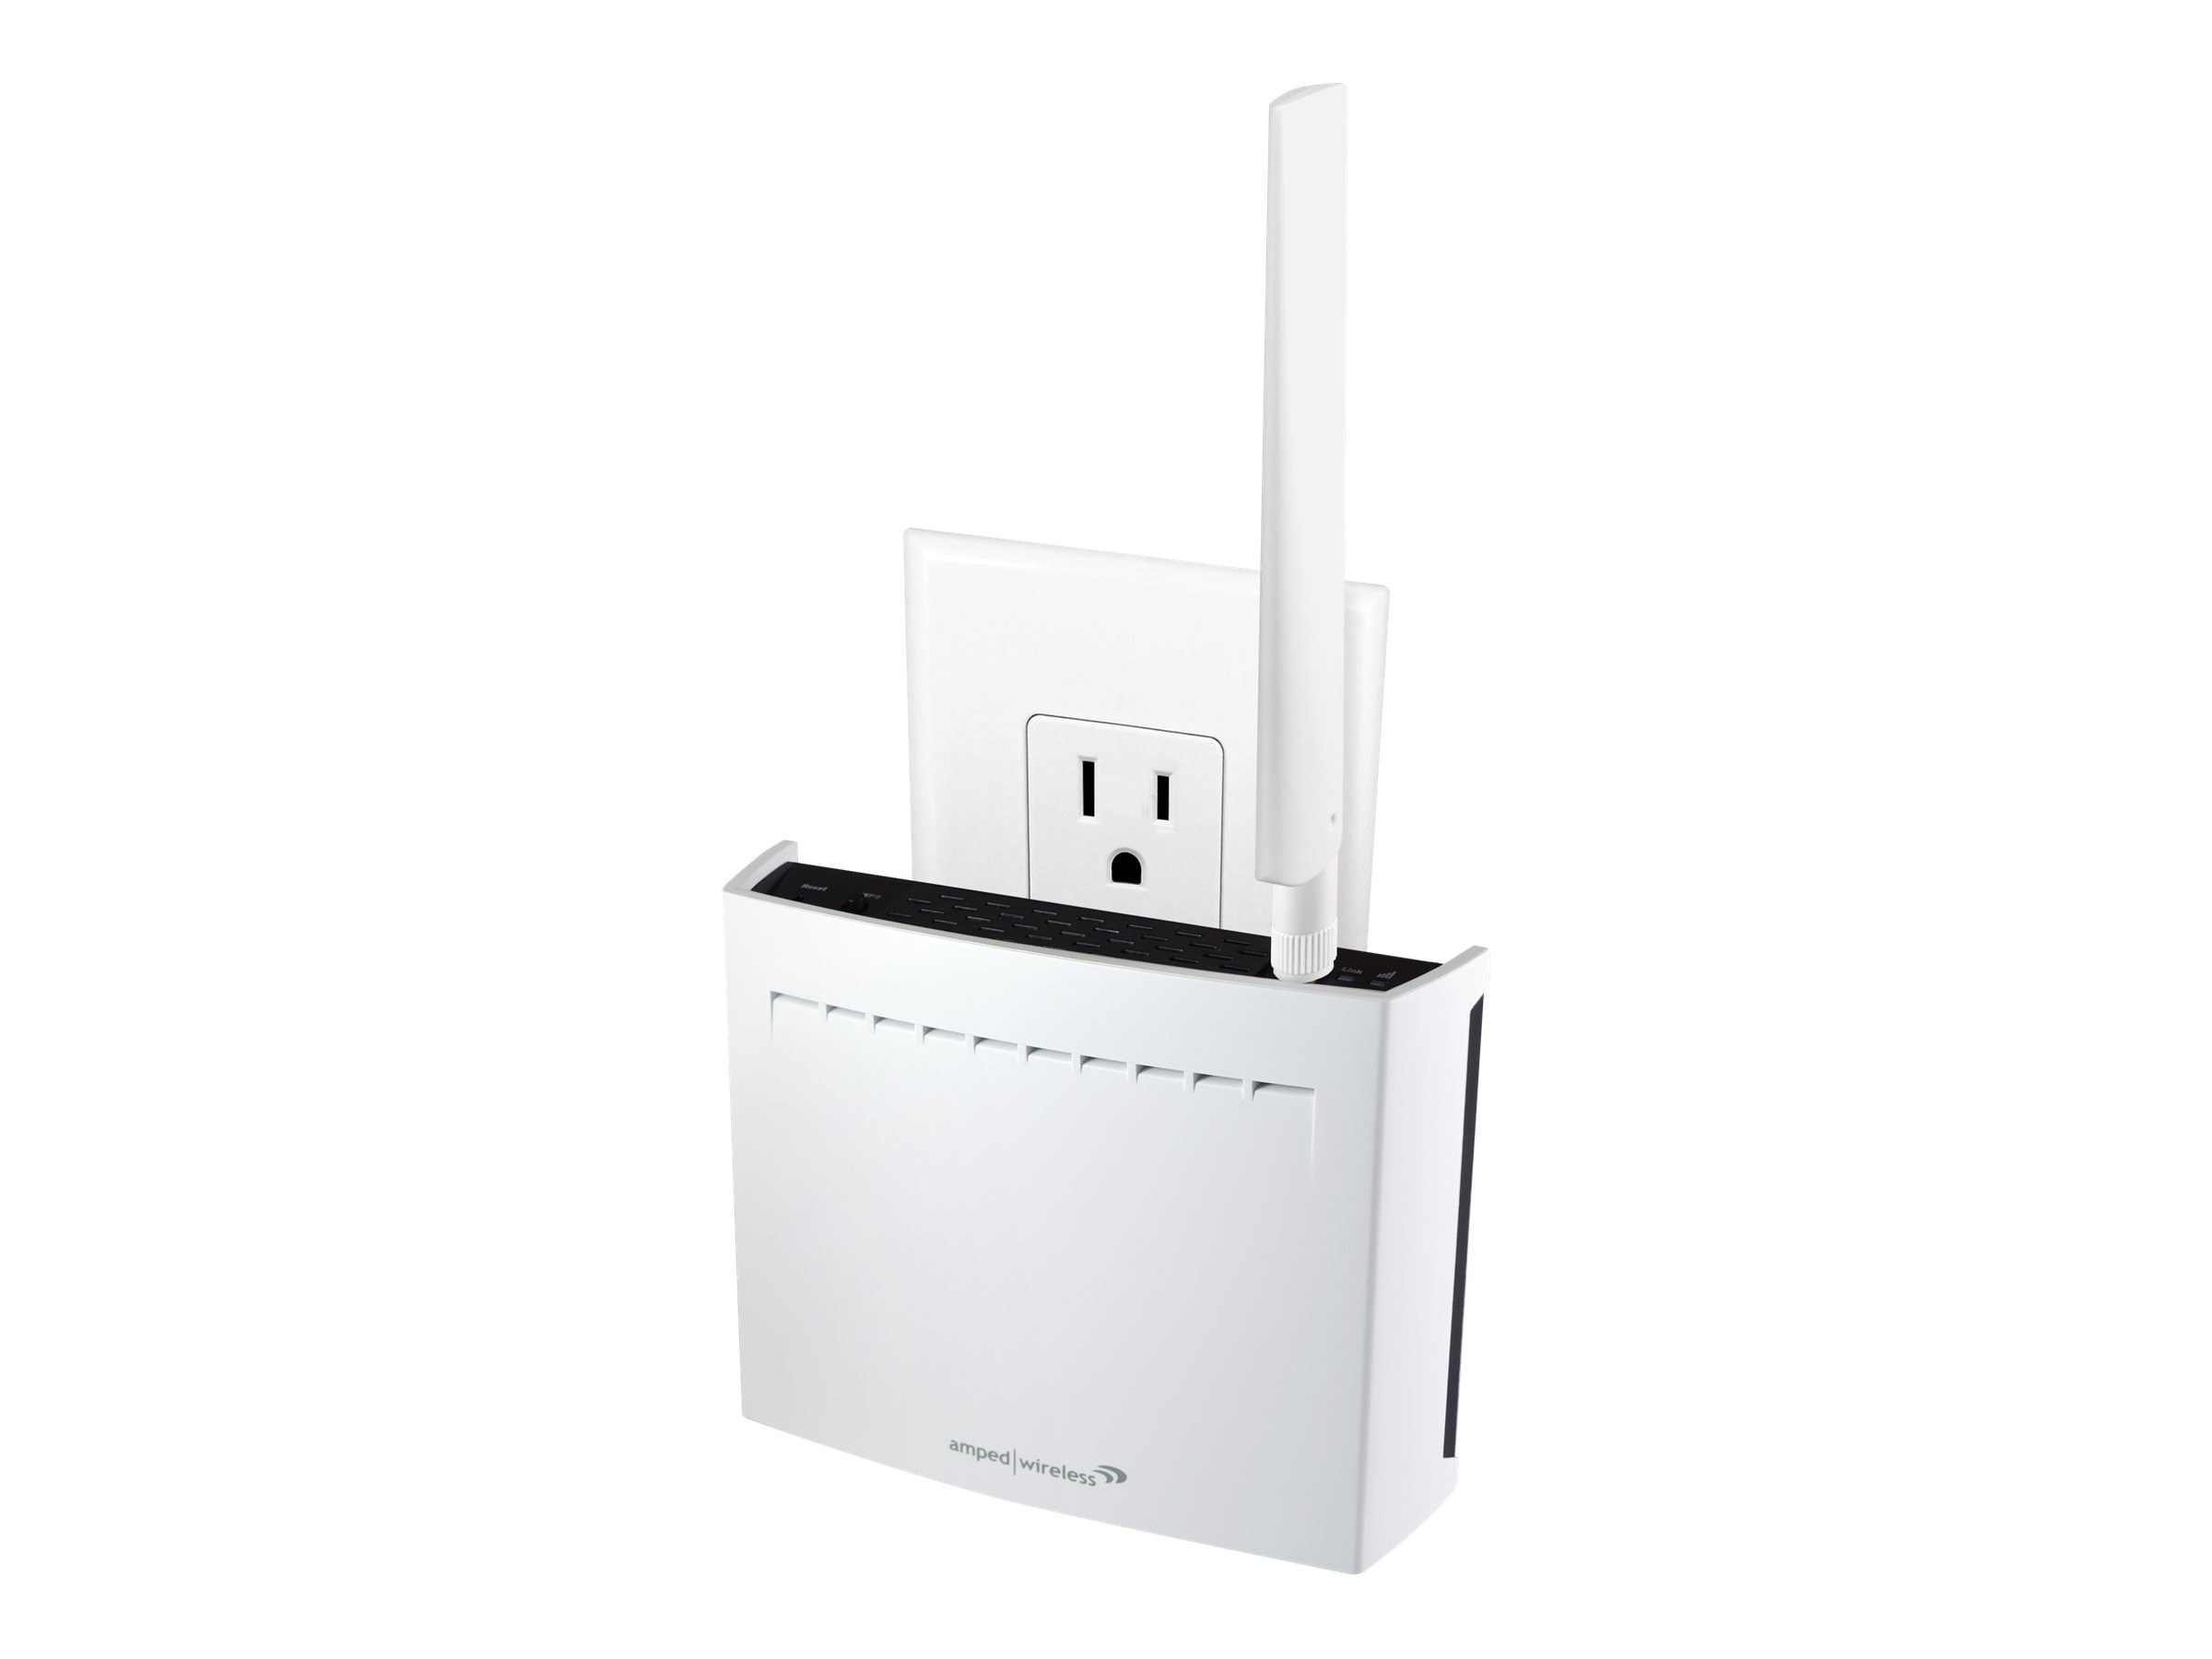 Amped Wireless High Power PlugIn AC Long Range Extender 802.11 AC1750 1 LAN Port